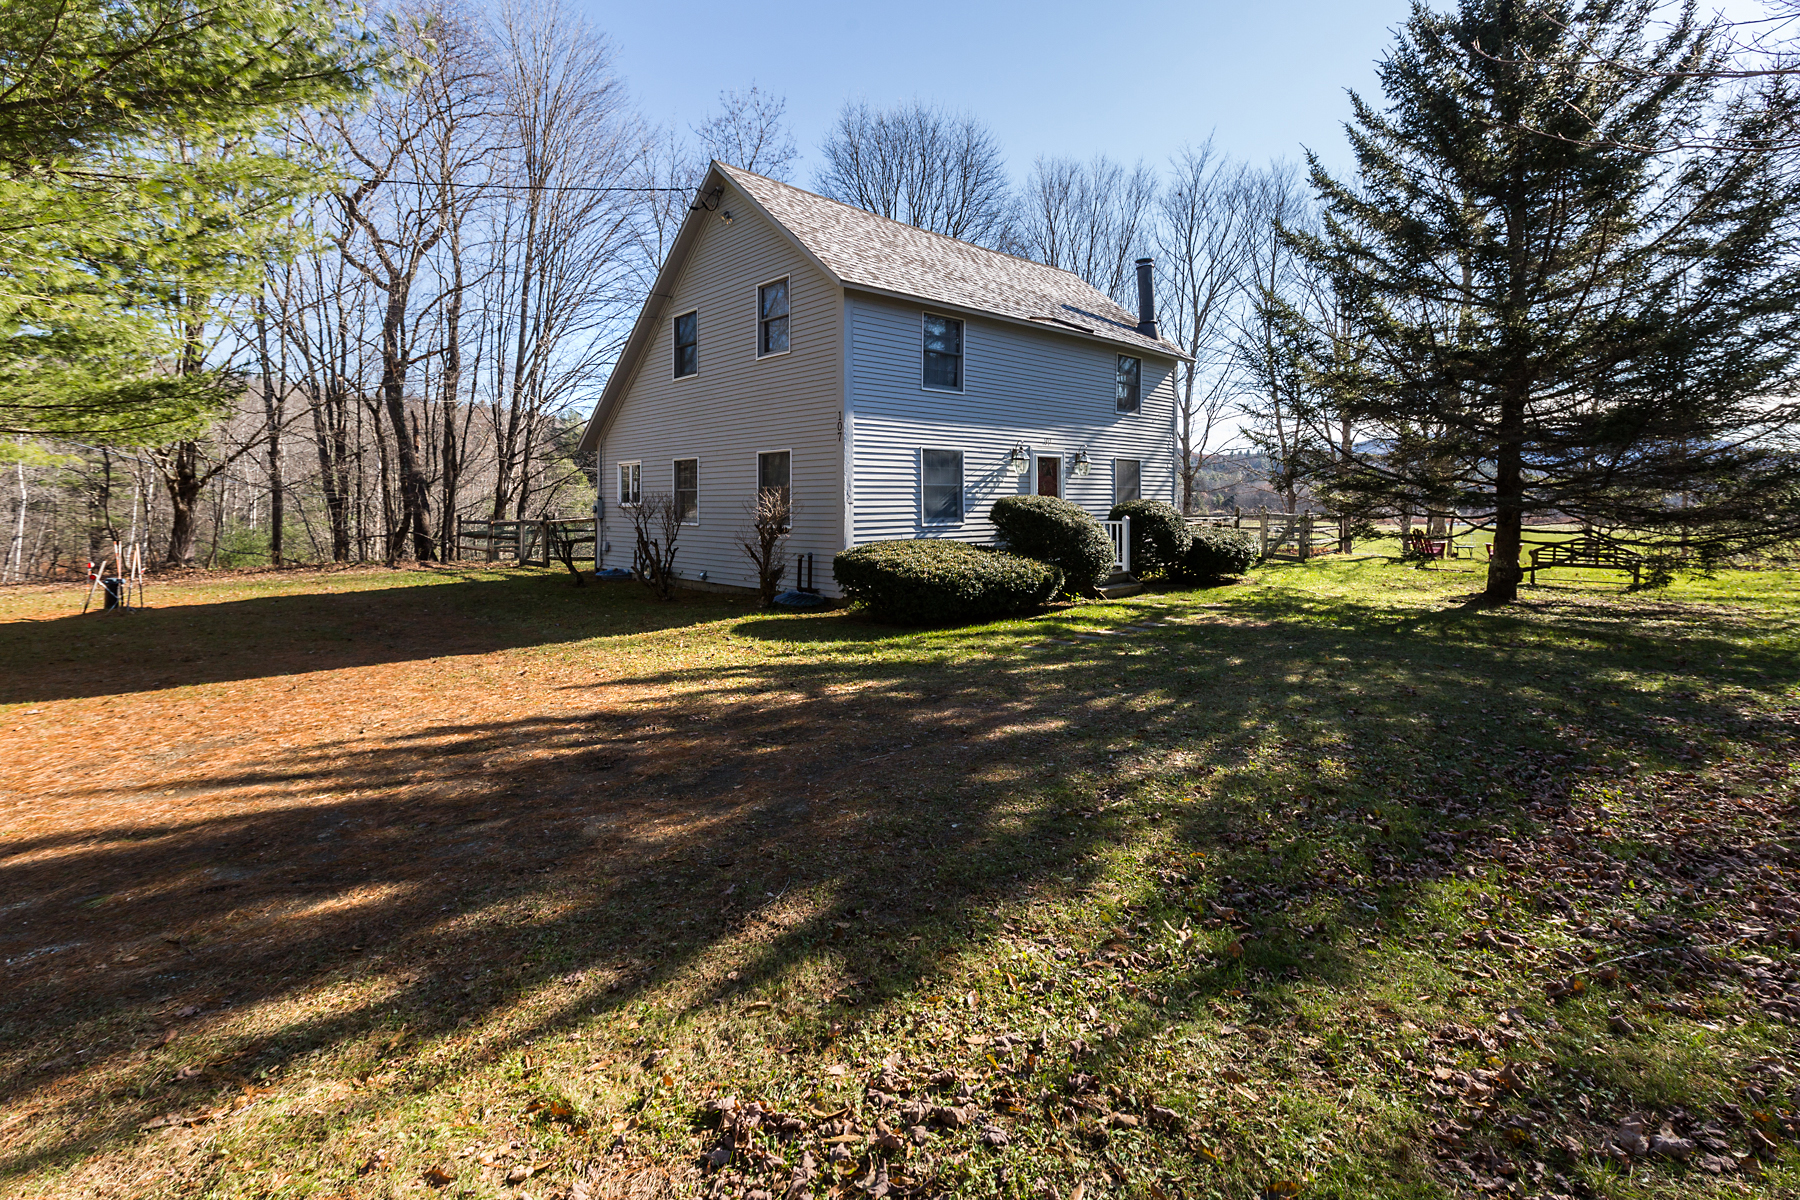 Single Family Home for Sale at The Barn House 107 Vt Route 100 Weston, Vermont 05161 United States